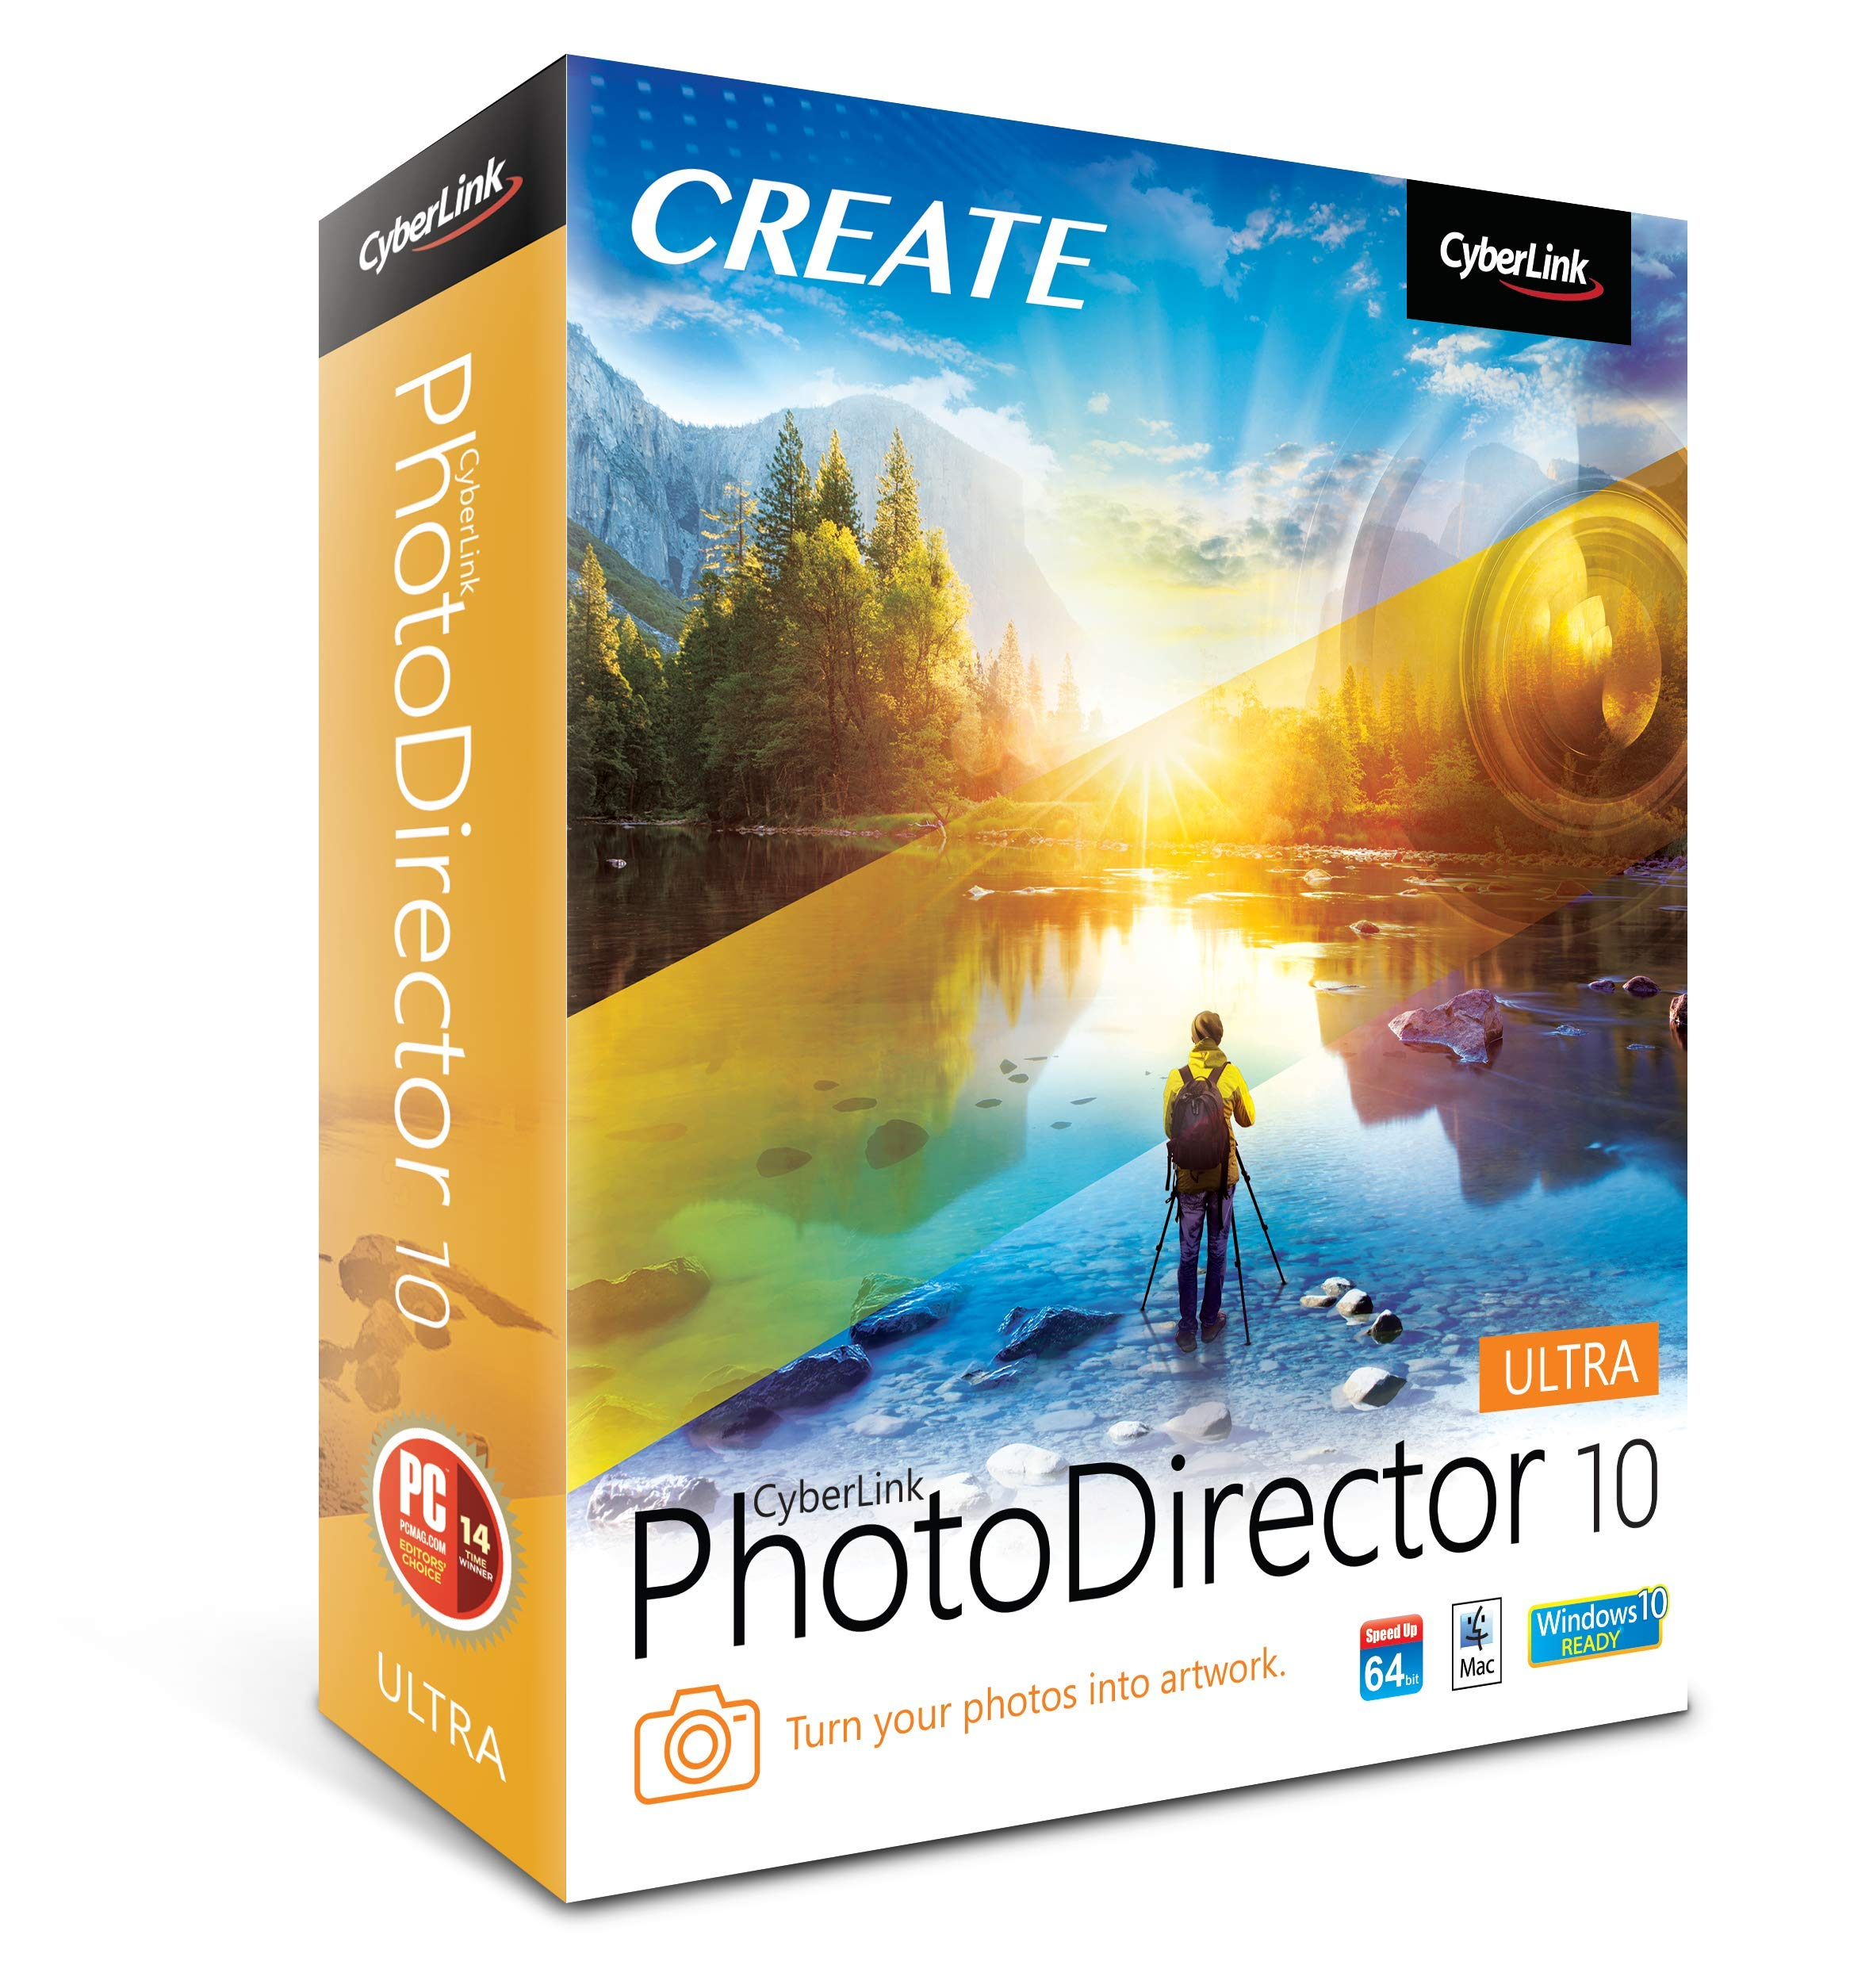 Cyberlink PhotoDirector 10 Ultra by Cyberlink